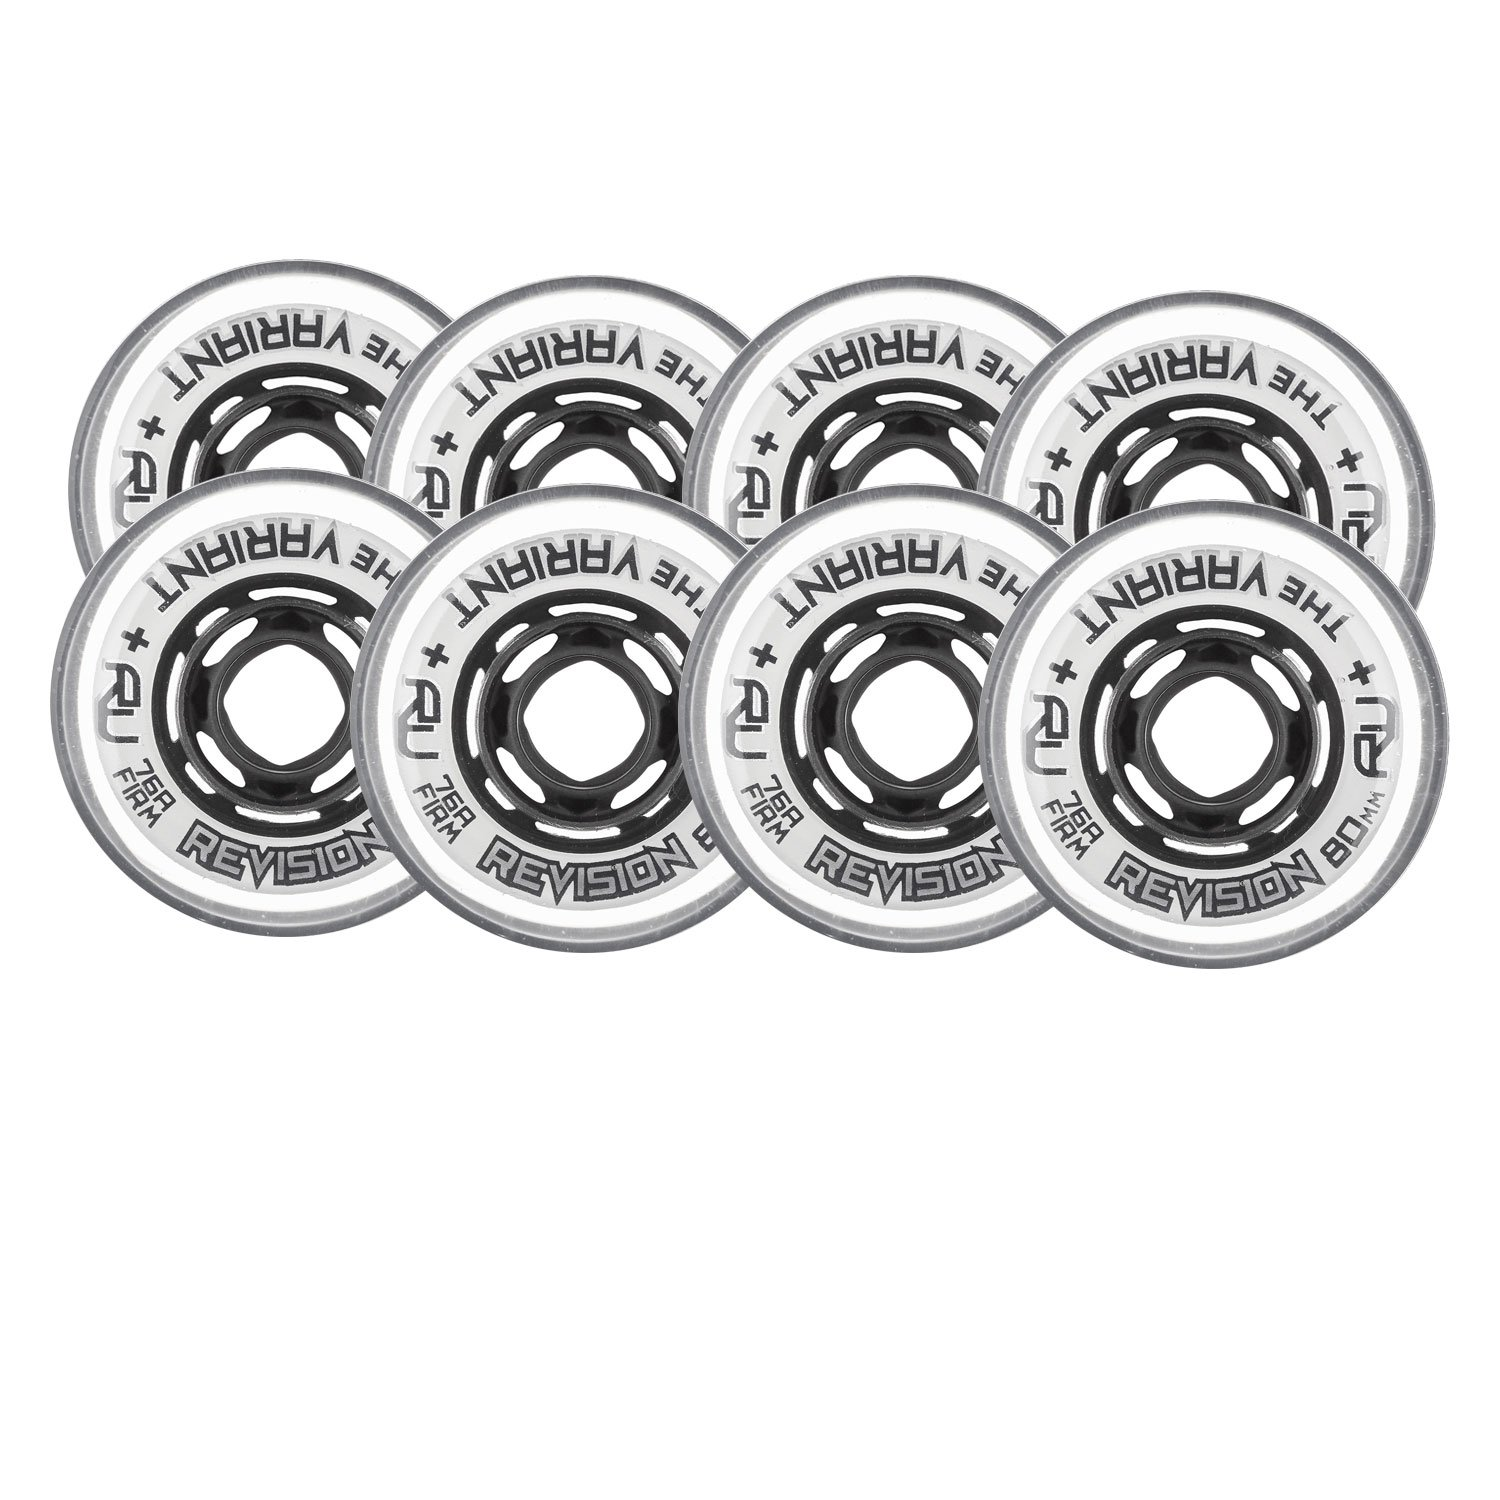 Revision Wheels Inline Roller Hockey Variant Firm White 76mm 80mm 76A Hilo Set